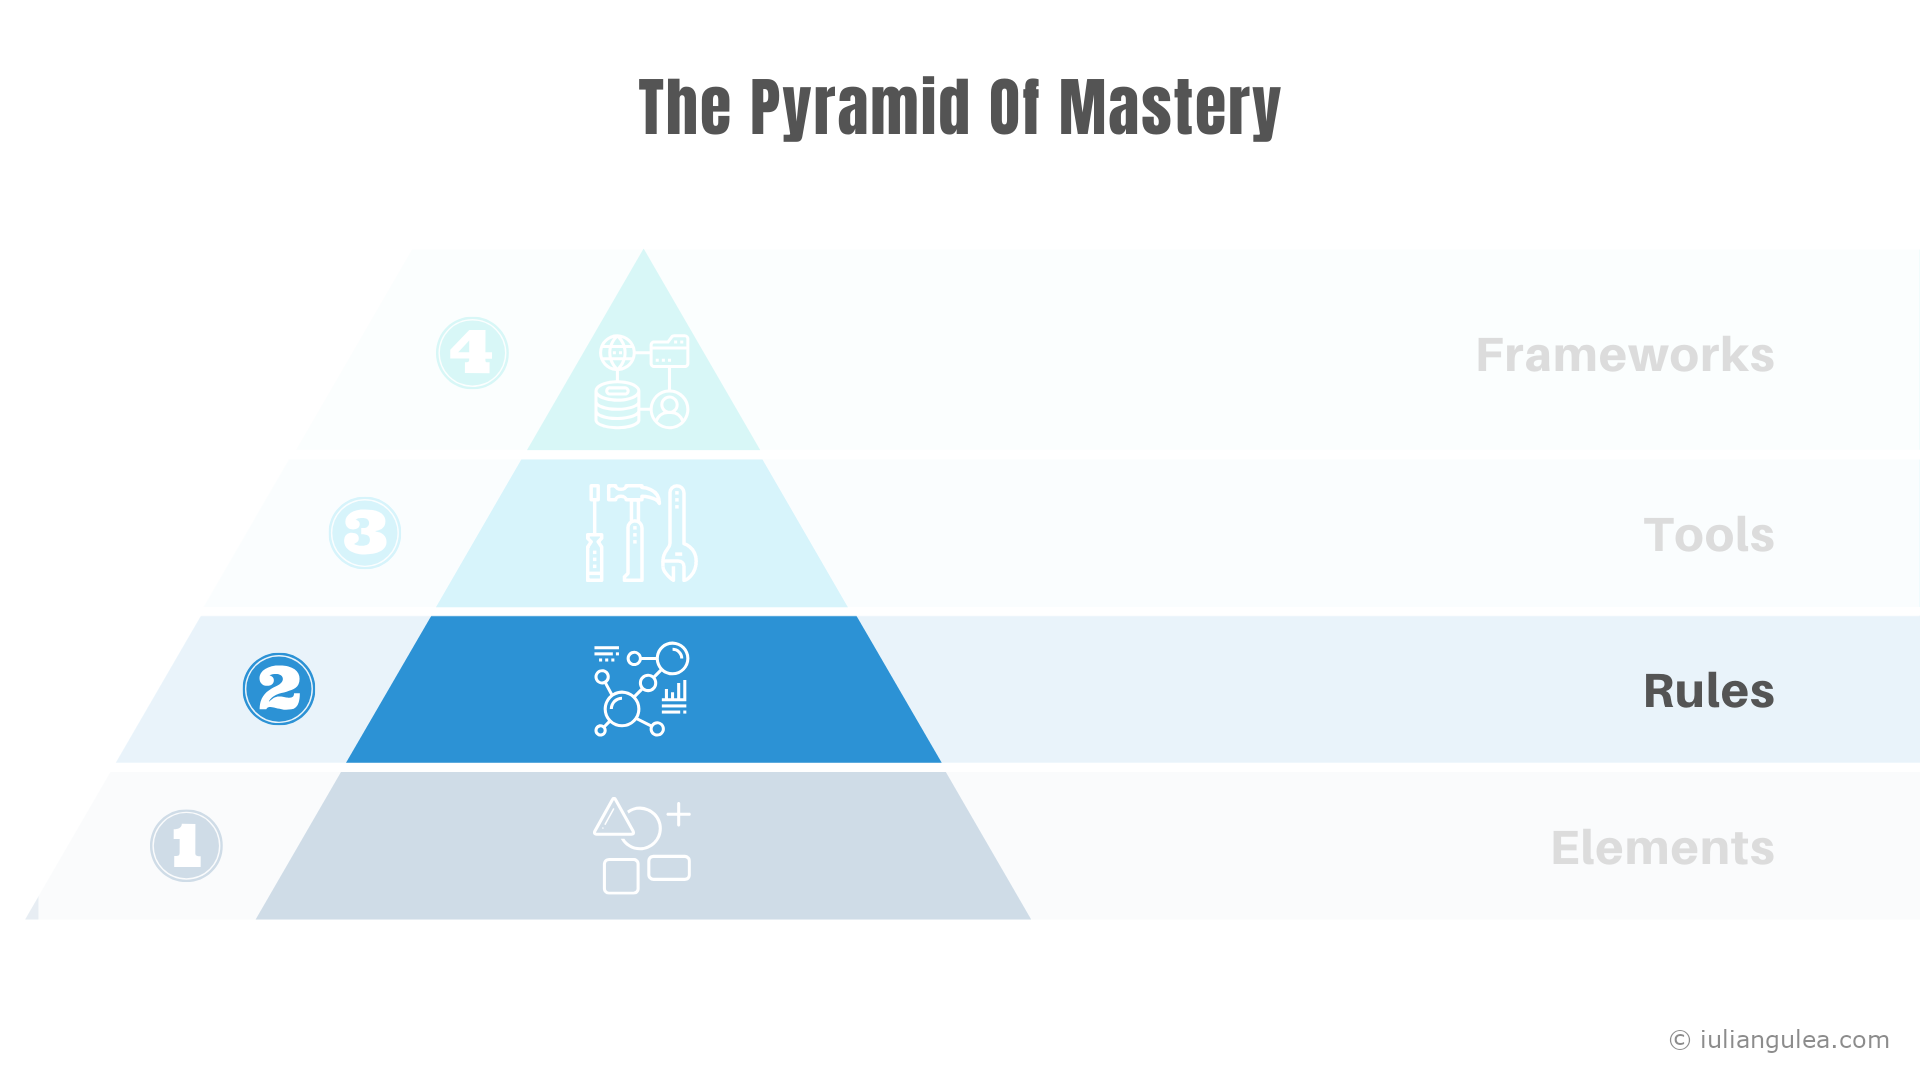 The Pyramid Of Mastery - The Rules